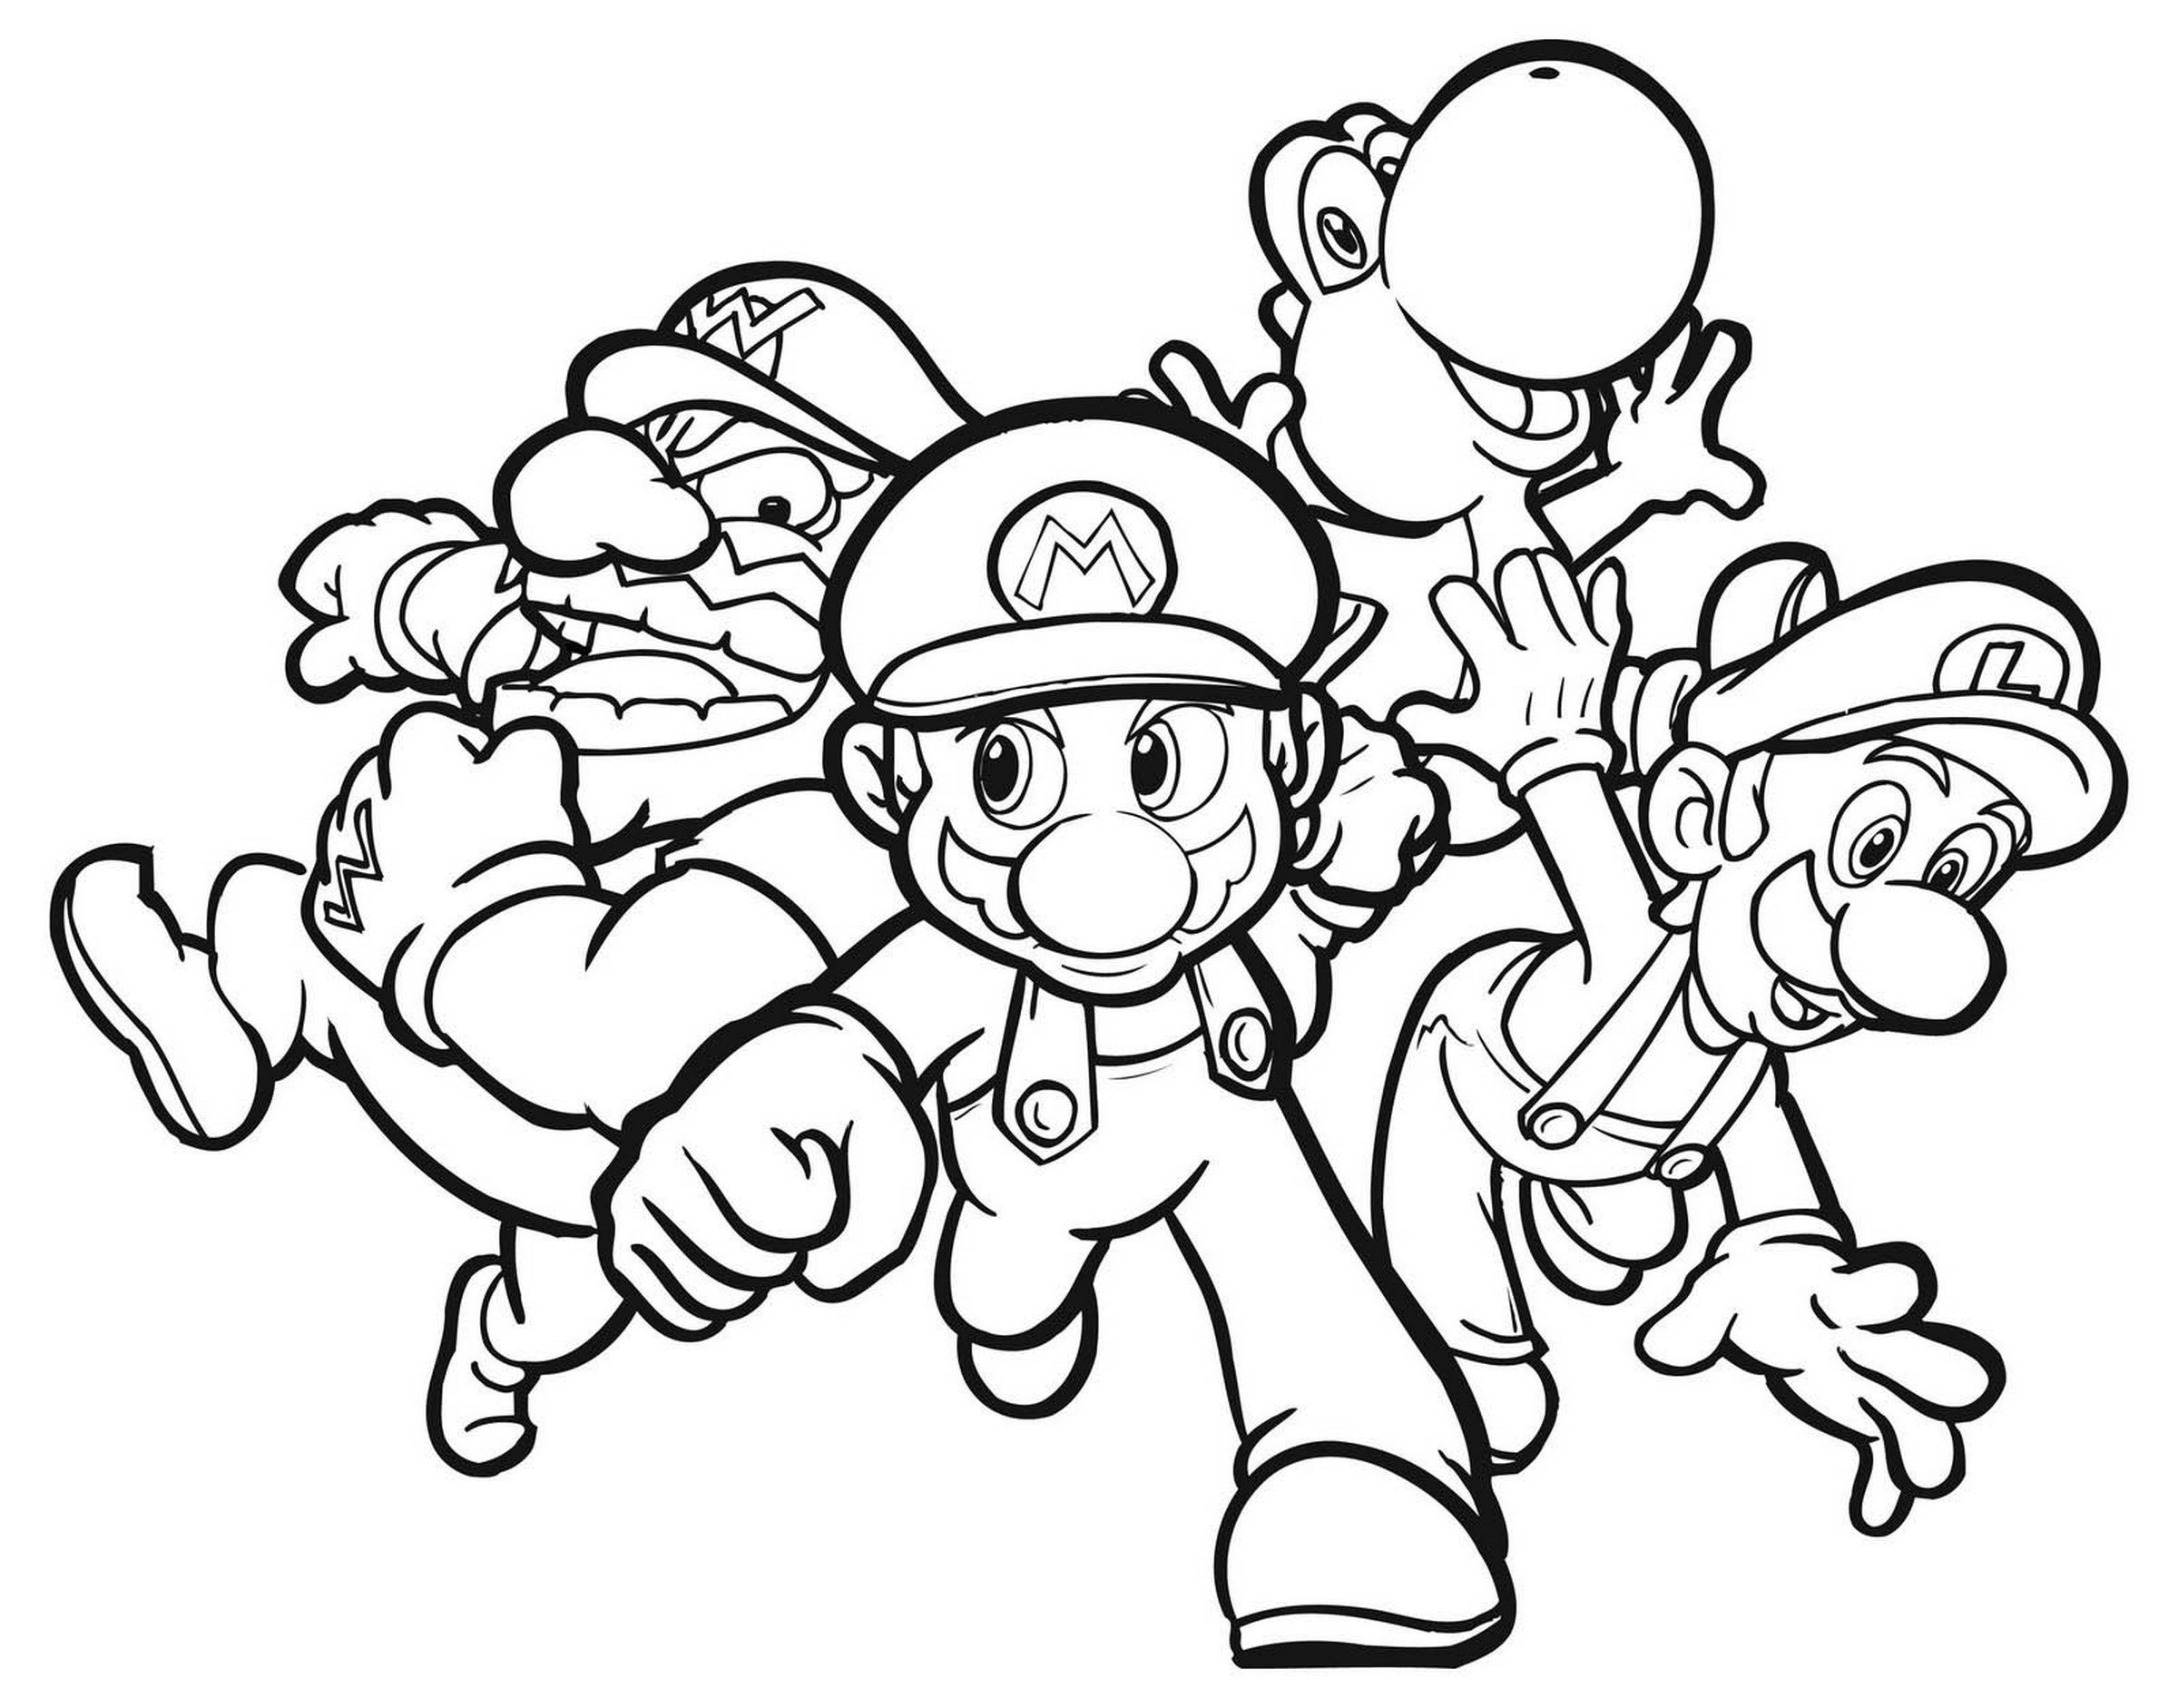 2400x1882 Full Size Coloring Pages